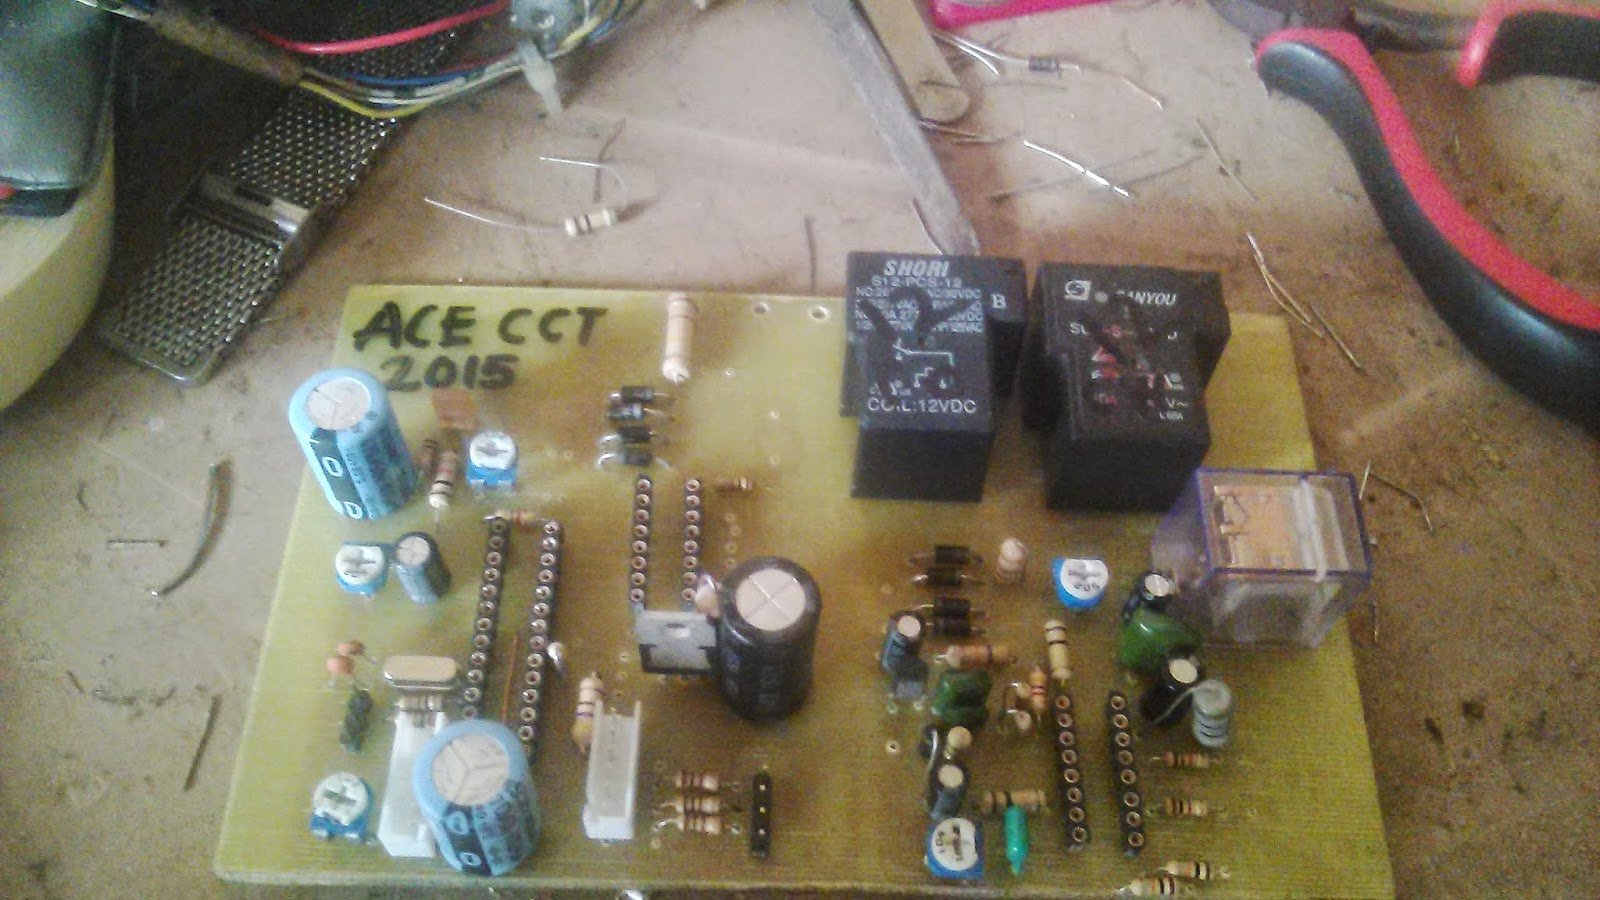 Mcu Based Inverter Control With A V R Using Pic16f876a 400watt Irfp448 Power Amplifier Circuit Diagram New Design 1